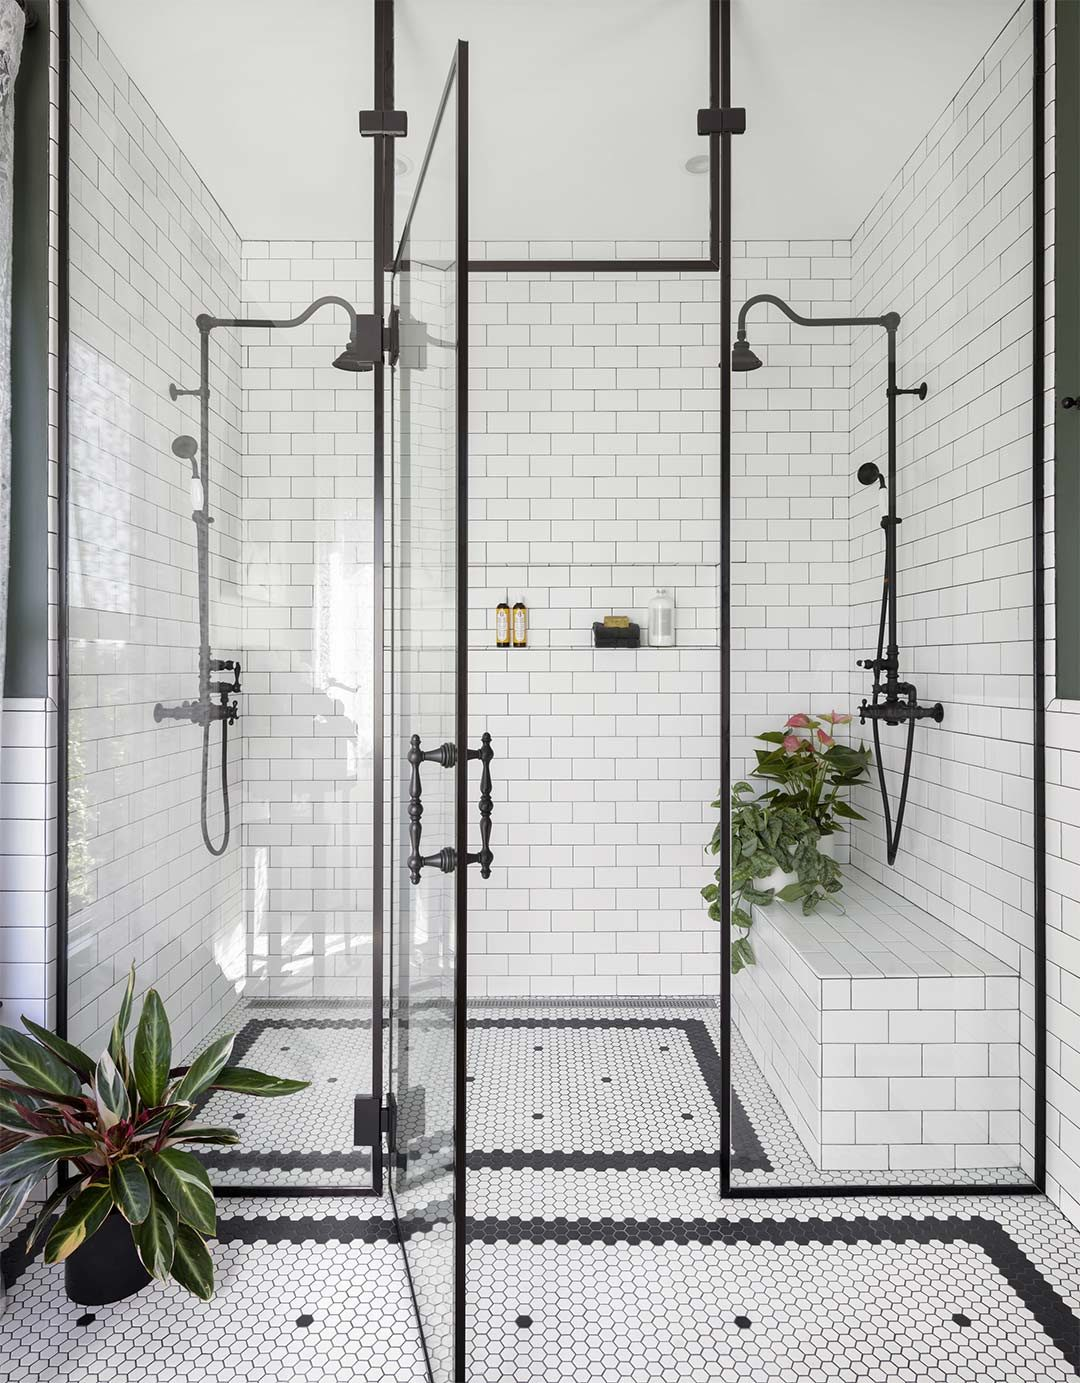 An example of a curbless shower